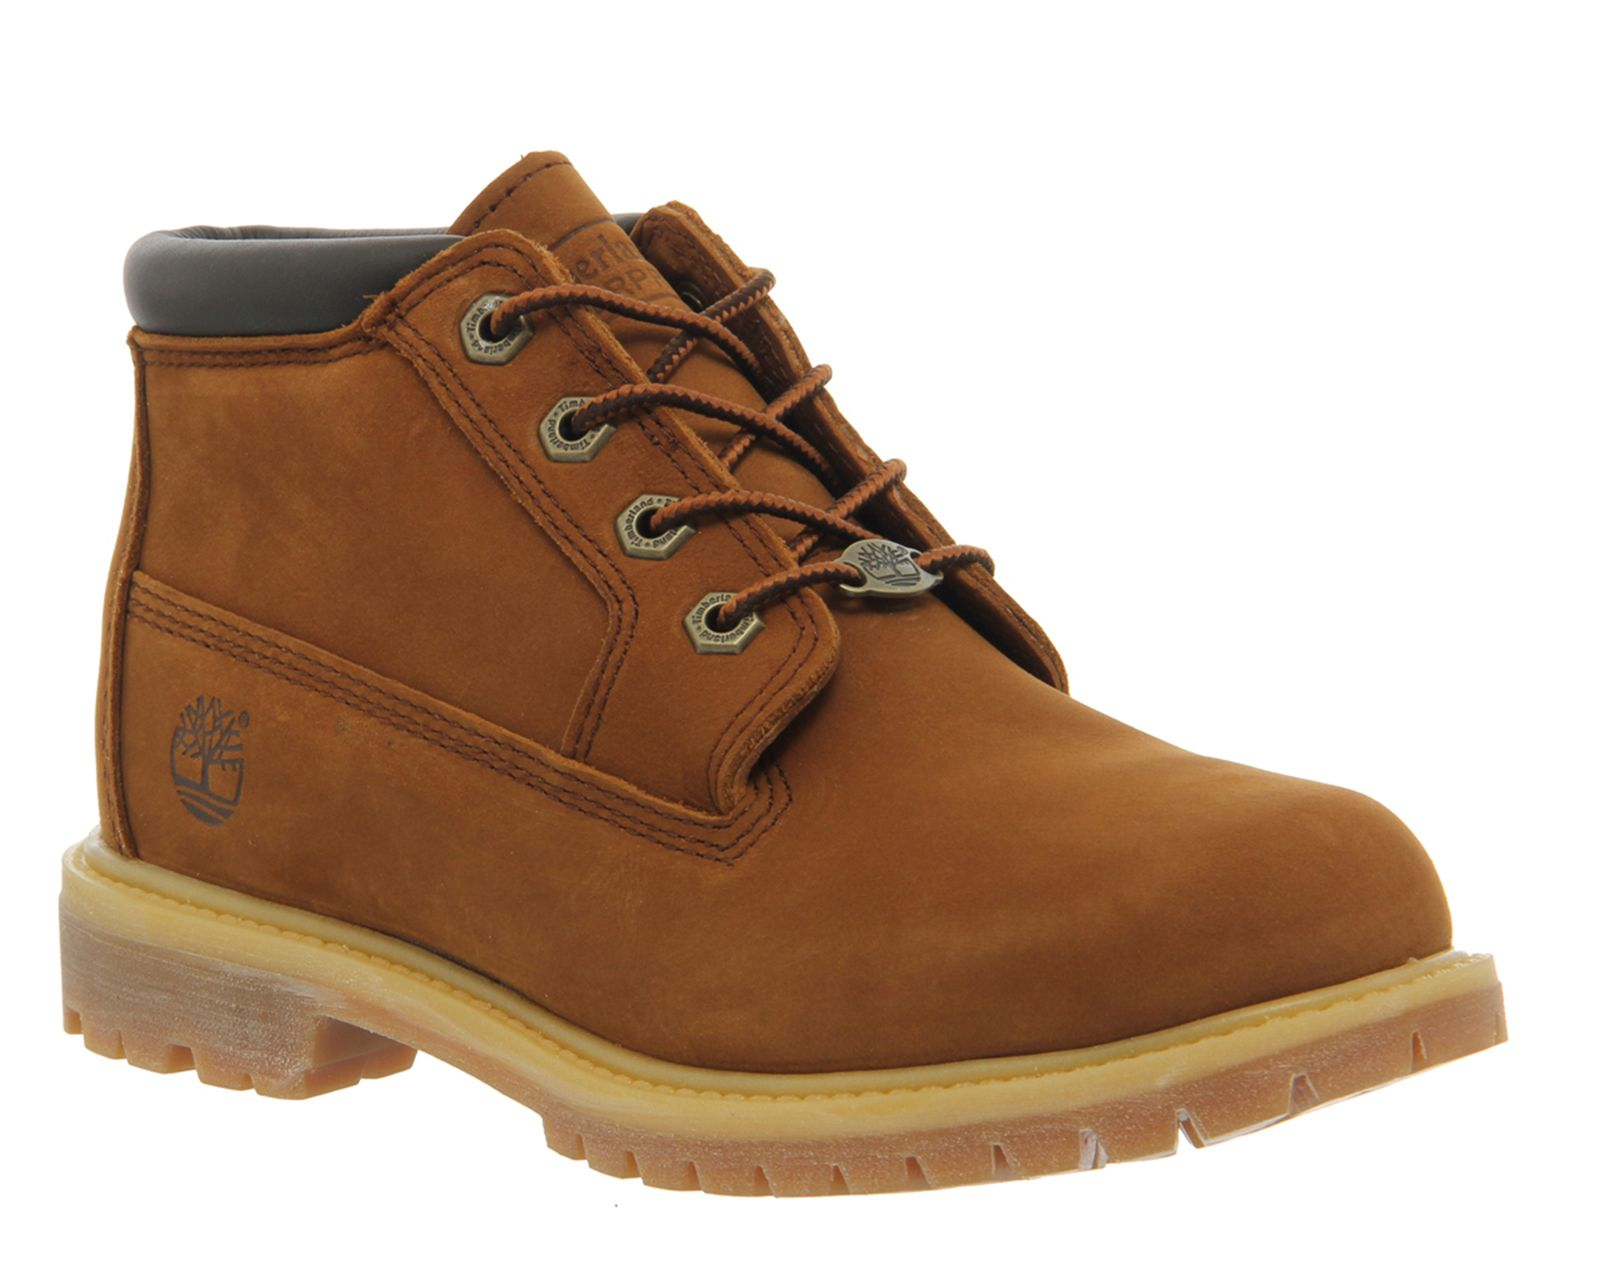 Timberland Nellie Chukka Double Waterproof boots Rust Nubuck - Ankle Boots